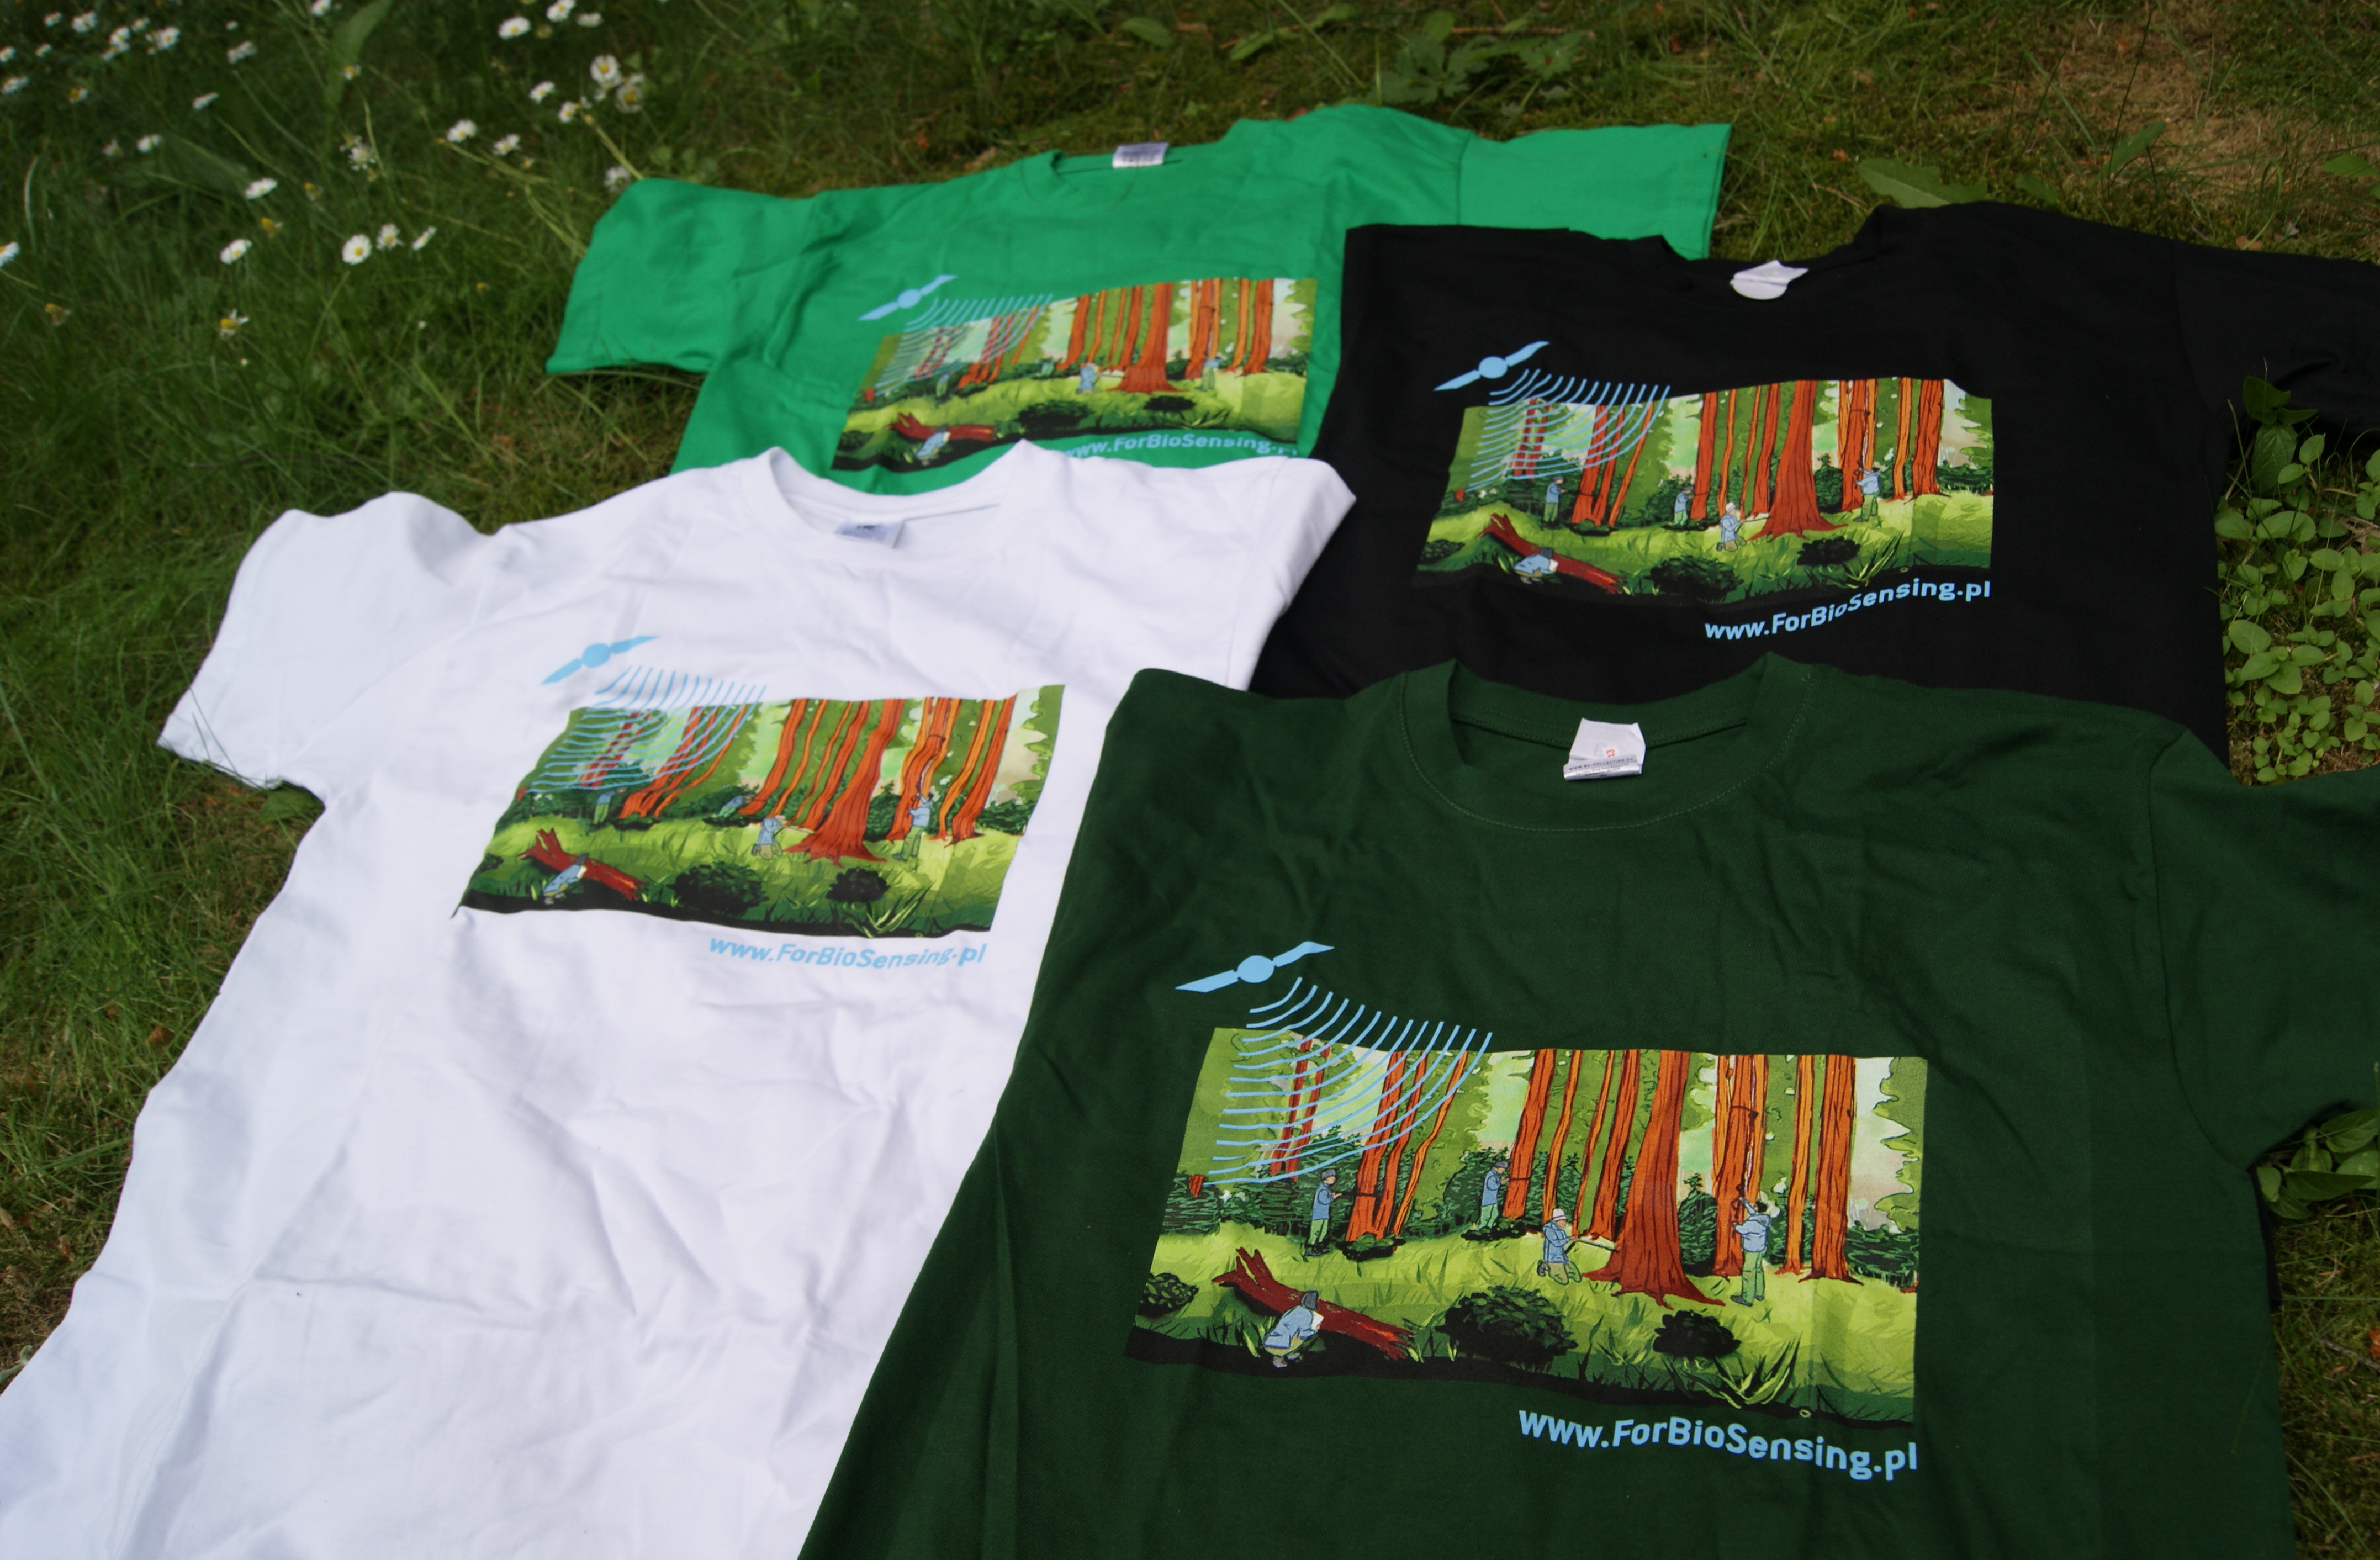 NEW PROMOTIONAL T-SHIRTS